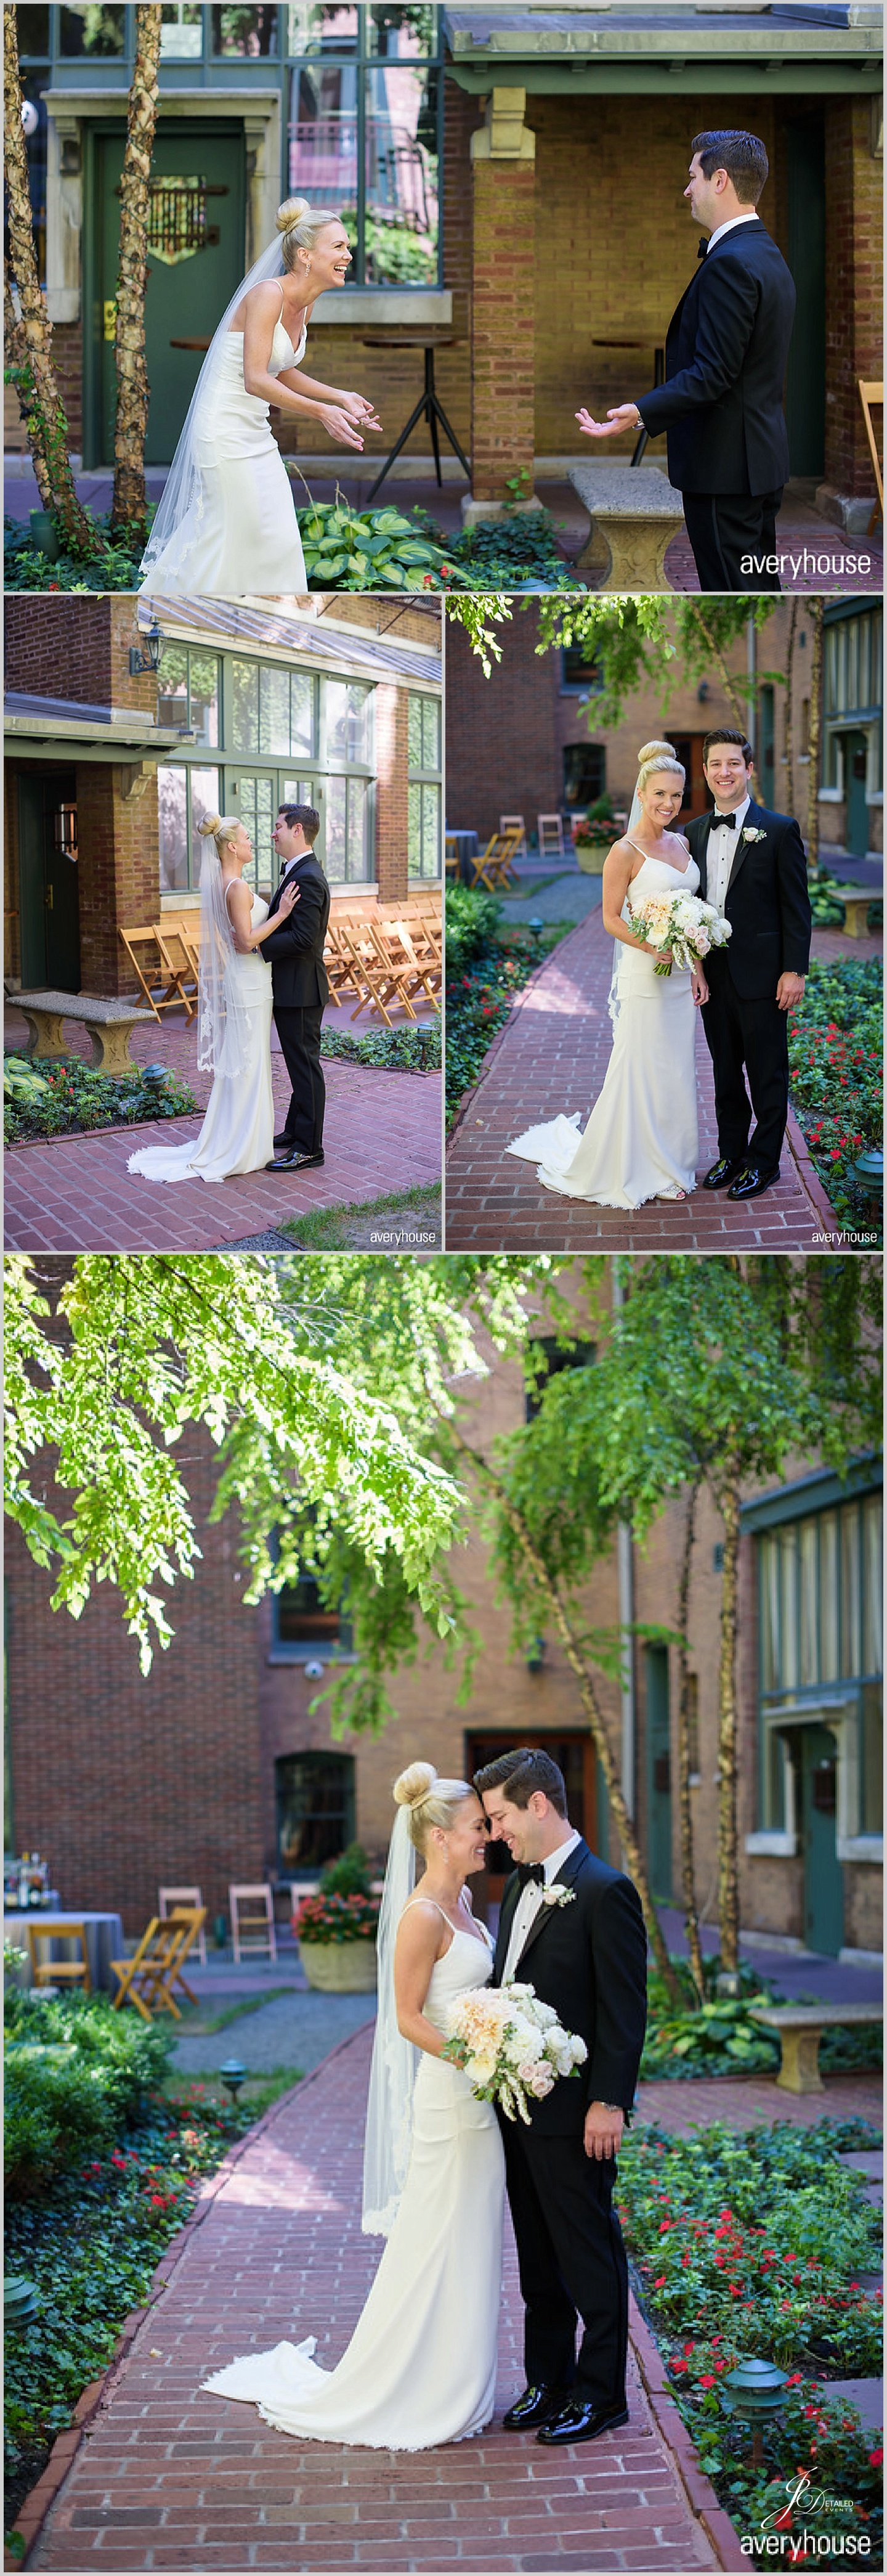 avery-house-wedding-chicago_2206